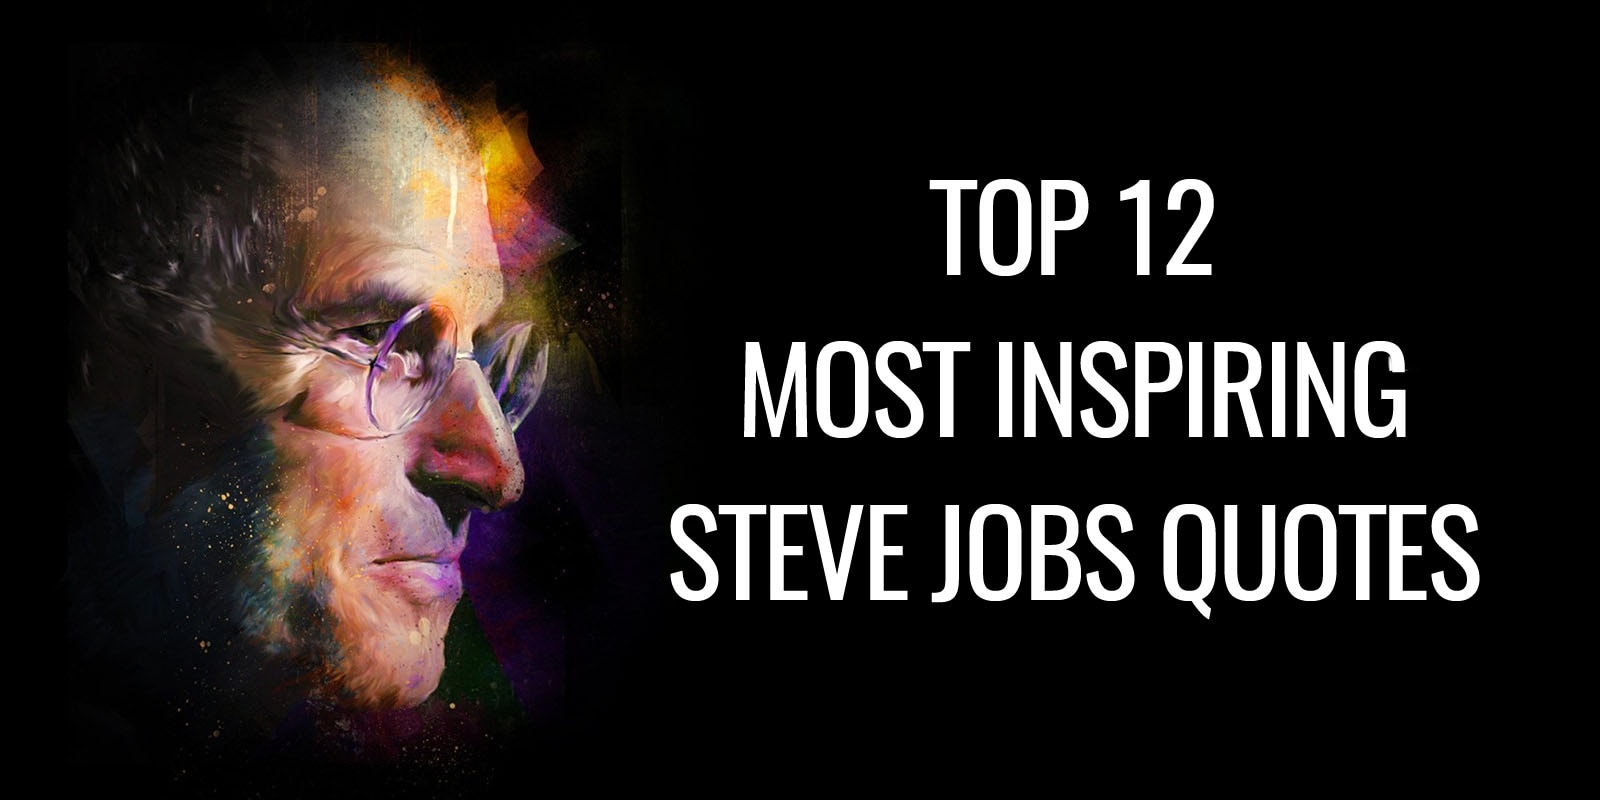 Top 12 Most Inspiring Steve Jobs Quotes  Goalcast